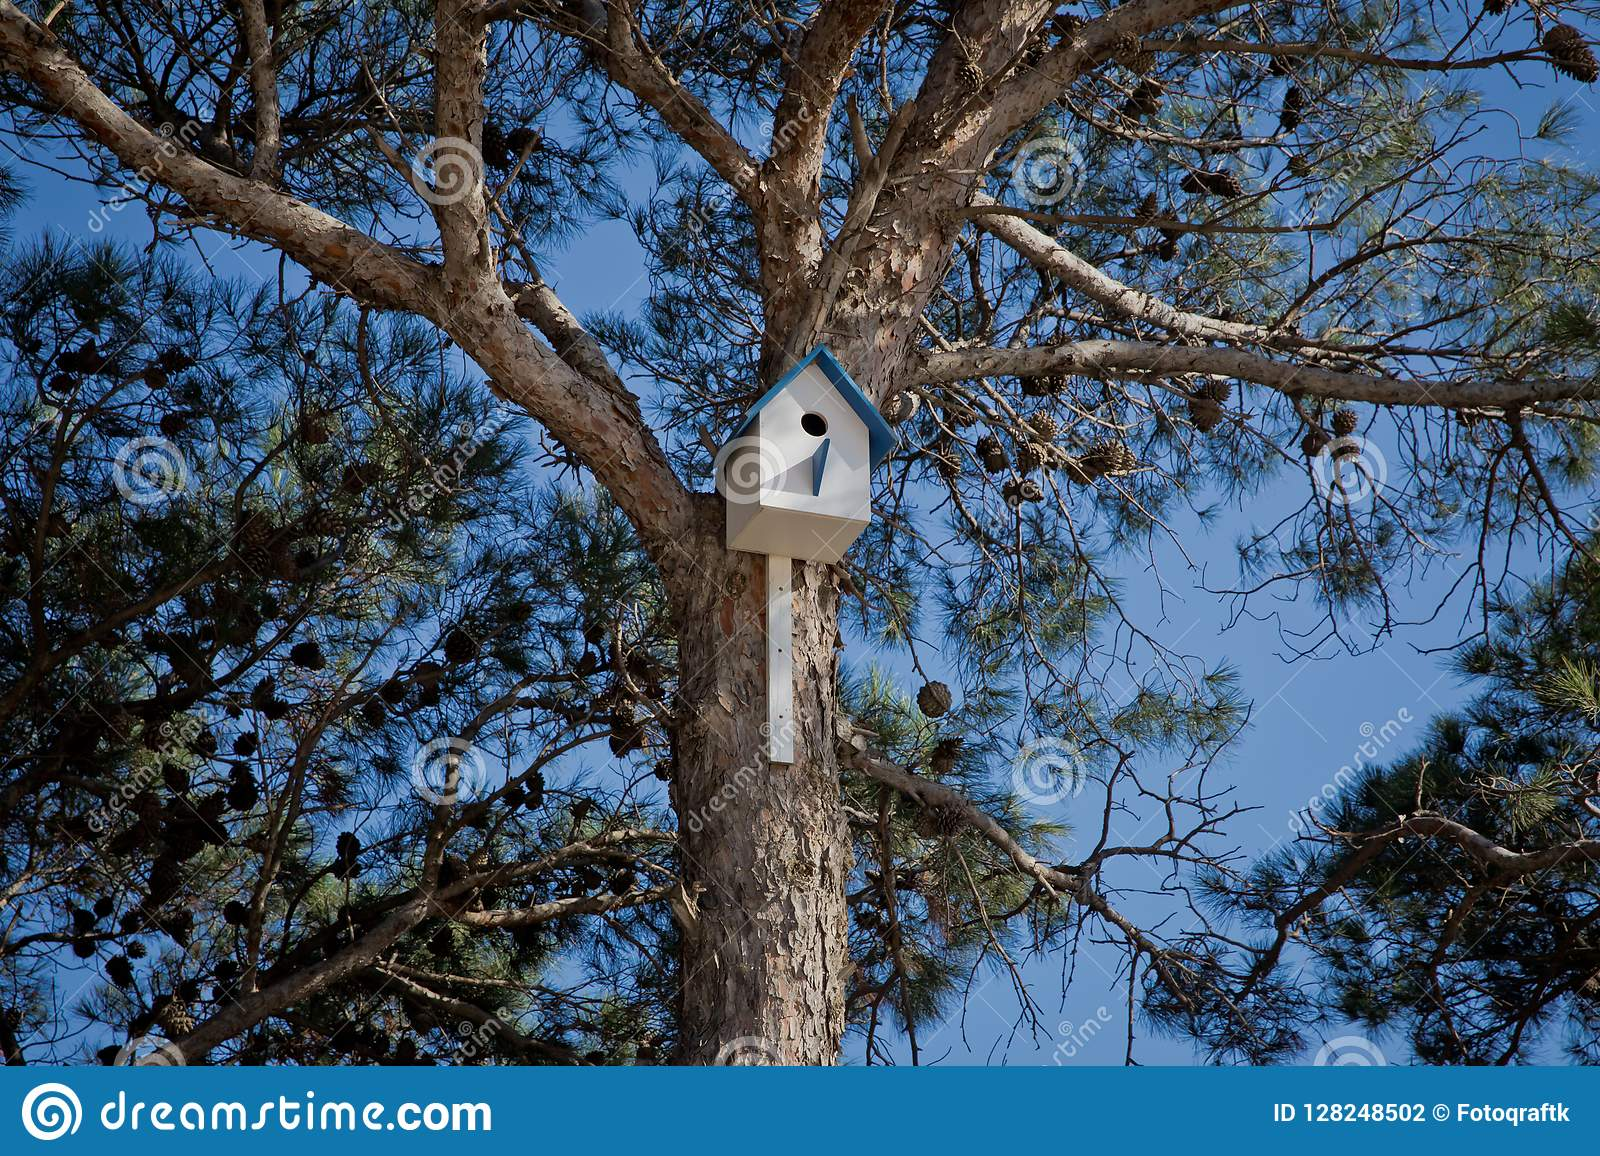 Bird house hanging from the tree with the entrance hole in the shape of a circle. Azerbaijan Baku .Sky birdhouse on a tree in a gr